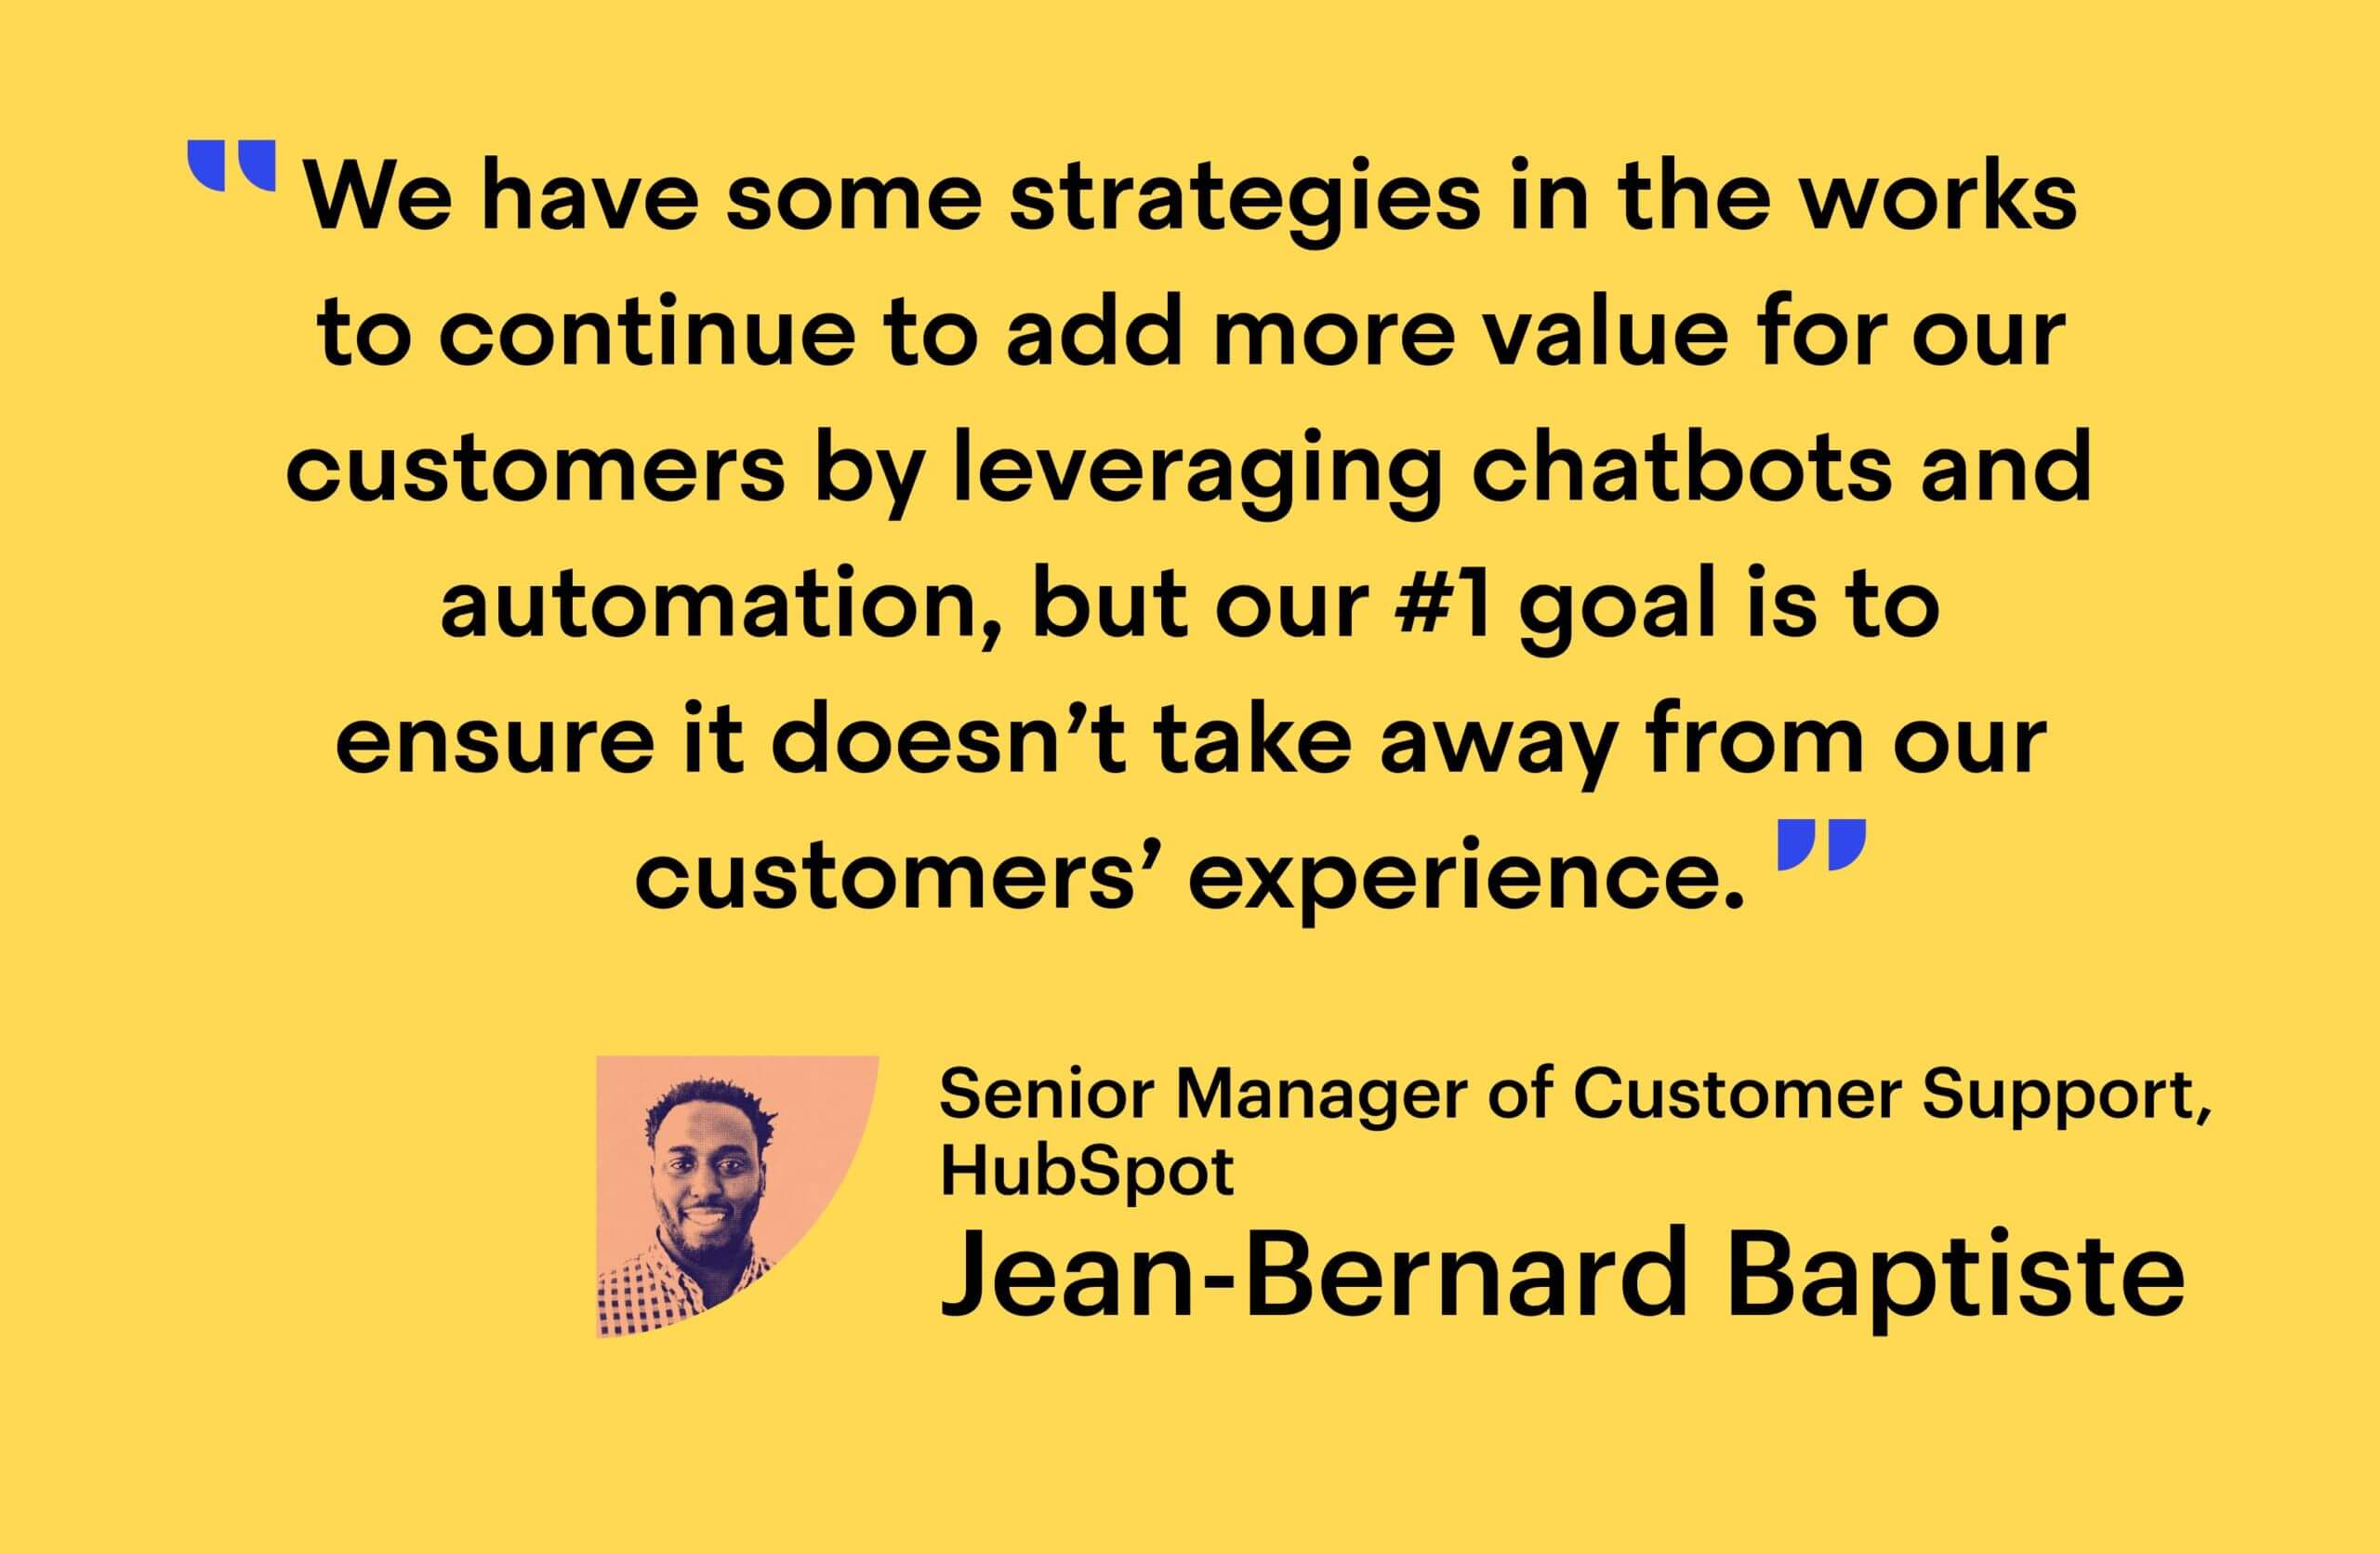 """""""We have some strategies in the works to continue to help add more value to our customers by leveraging chatbots and automation, but our #1 goal is to ensure it doesn't take away from our customers' experience."""" - Jean-Bernard Baptiste, Senior Manager of Customer Support at HubSpot"""